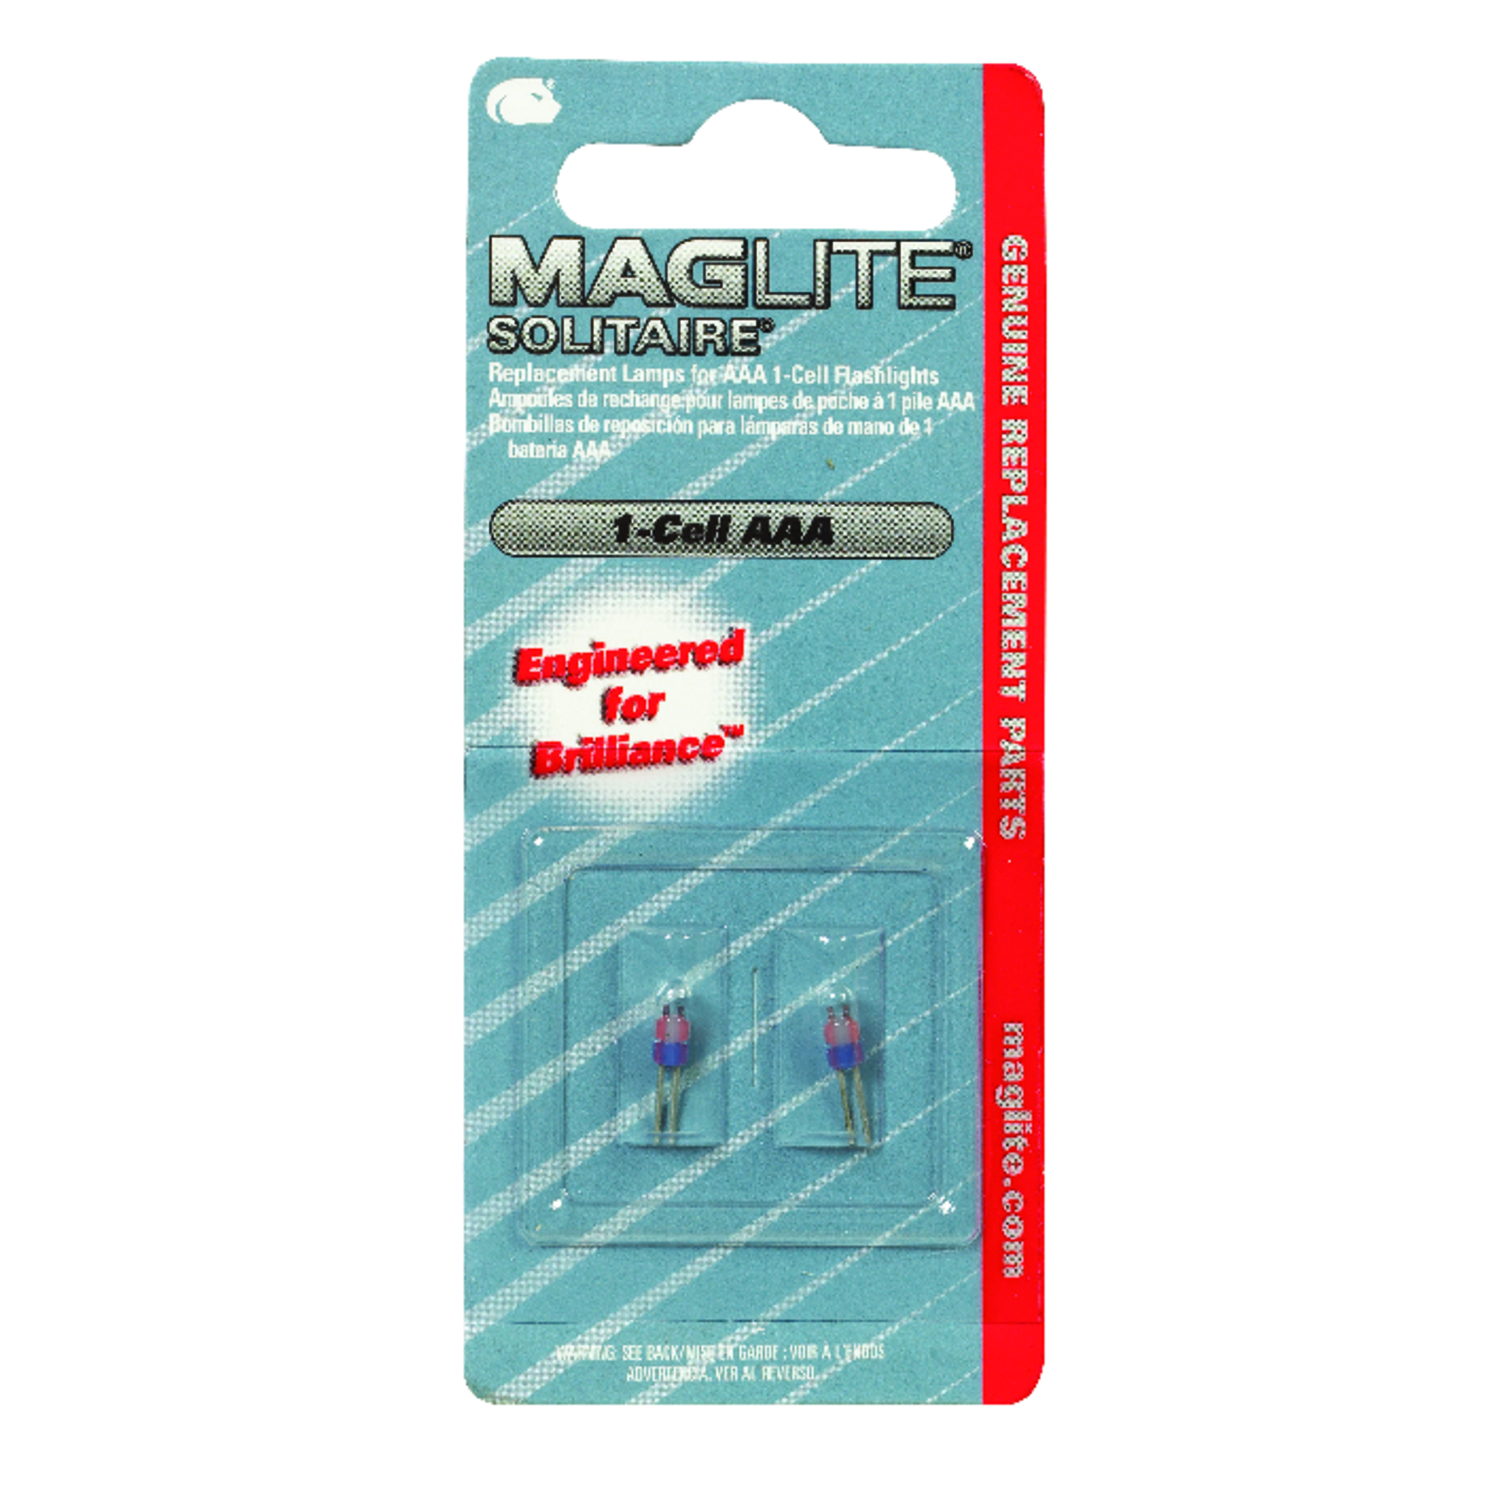 Maglite  Solitaire 1-Cell AAA  Flashlight Bulb  Bi-Pin Base